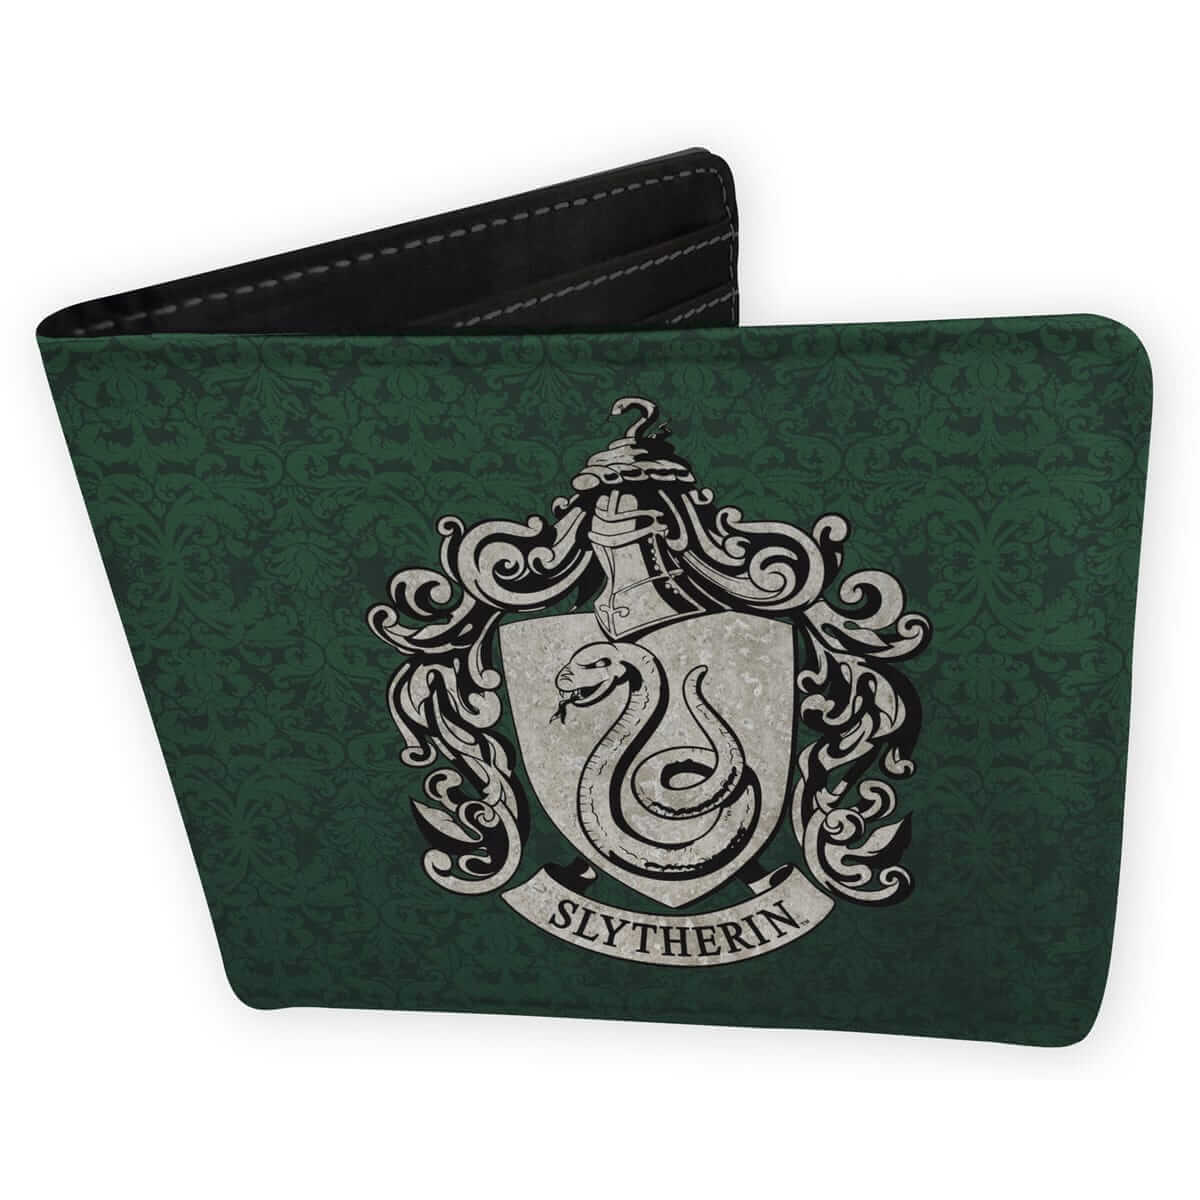 PORTEFEUILLE SERPENTARD VERT EN CUIR - HARRY POTTER